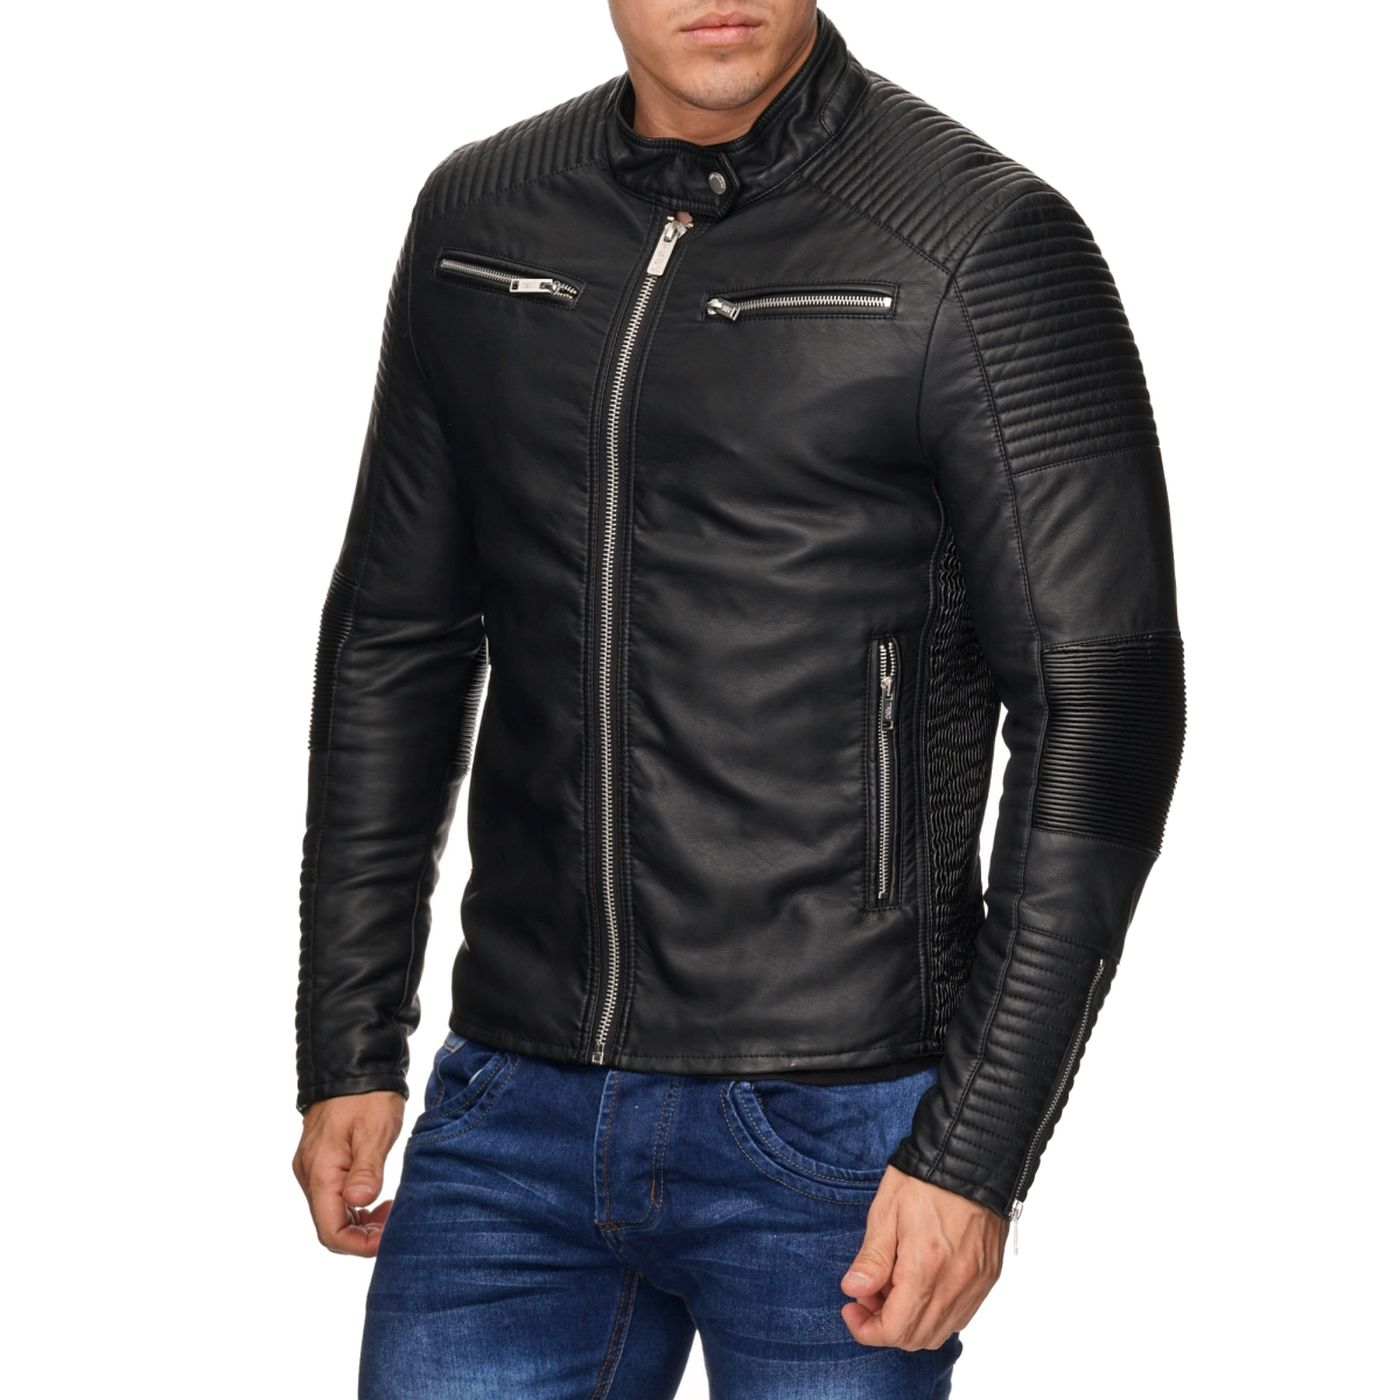 red bridge herren biker jacke kunst lederjacke bikerjacke. Black Bedroom Furniture Sets. Home Design Ideas